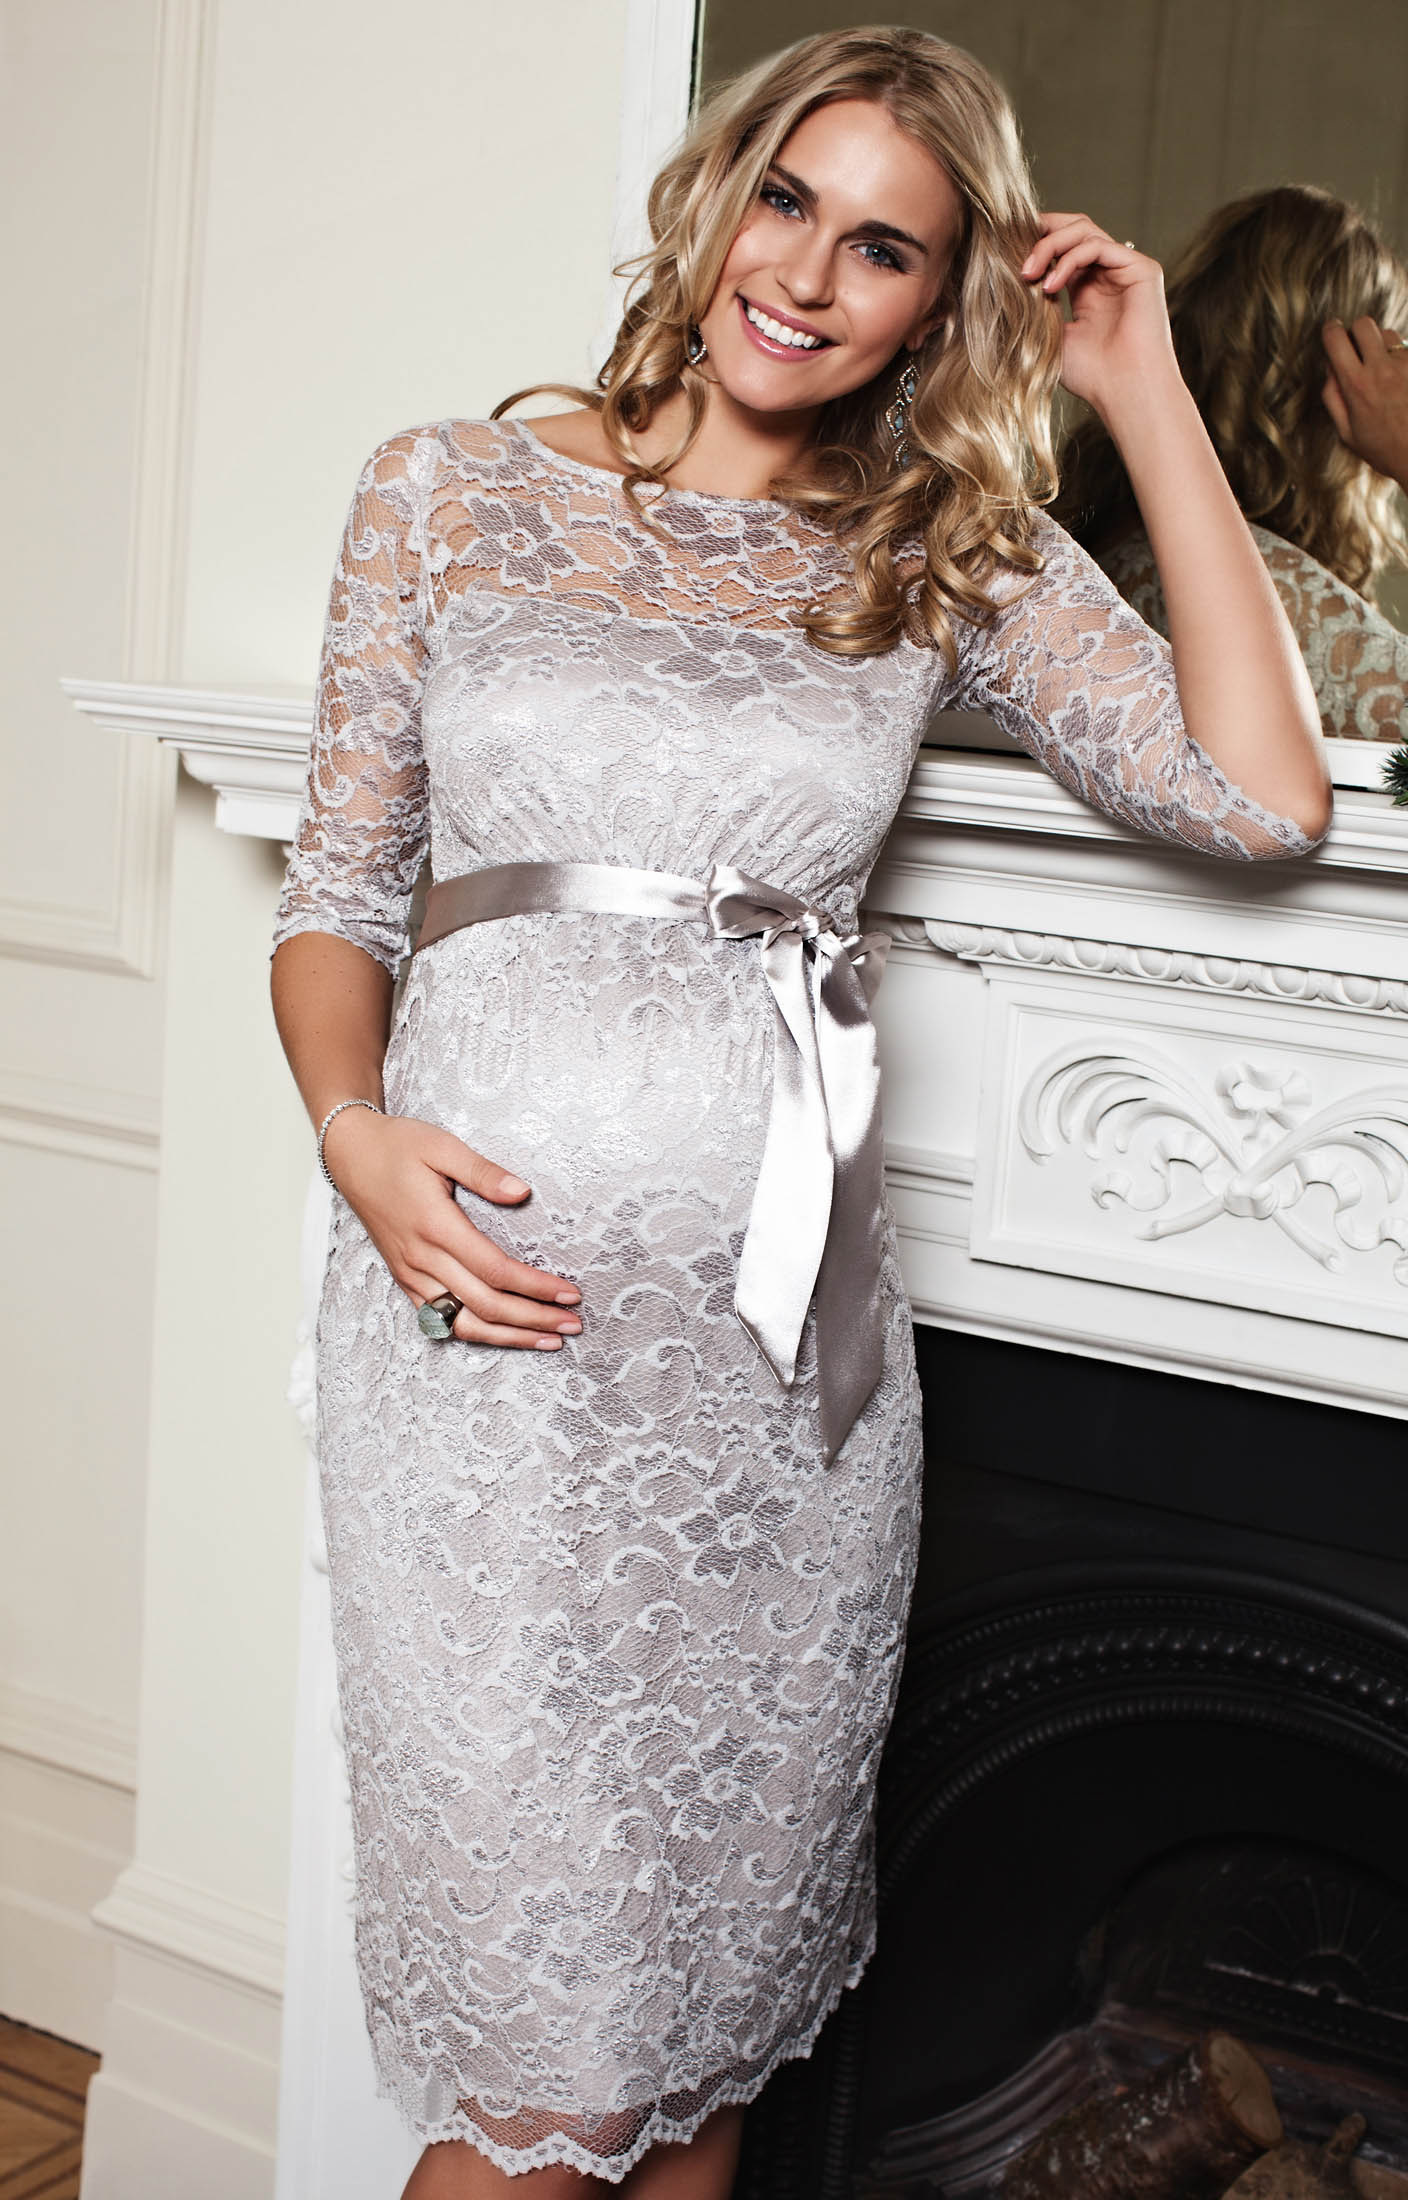 Full Size of Baby Shower:stylish Maternity Dresses For Baby Shower Ba Shower Outfits For Ba Shower Cute Maternity Dress Ba Regarding Stylish Maternity Dresses For Baby Shower Amelia Maternity Dress Short Silver Moonbeam By Tiffany Rose